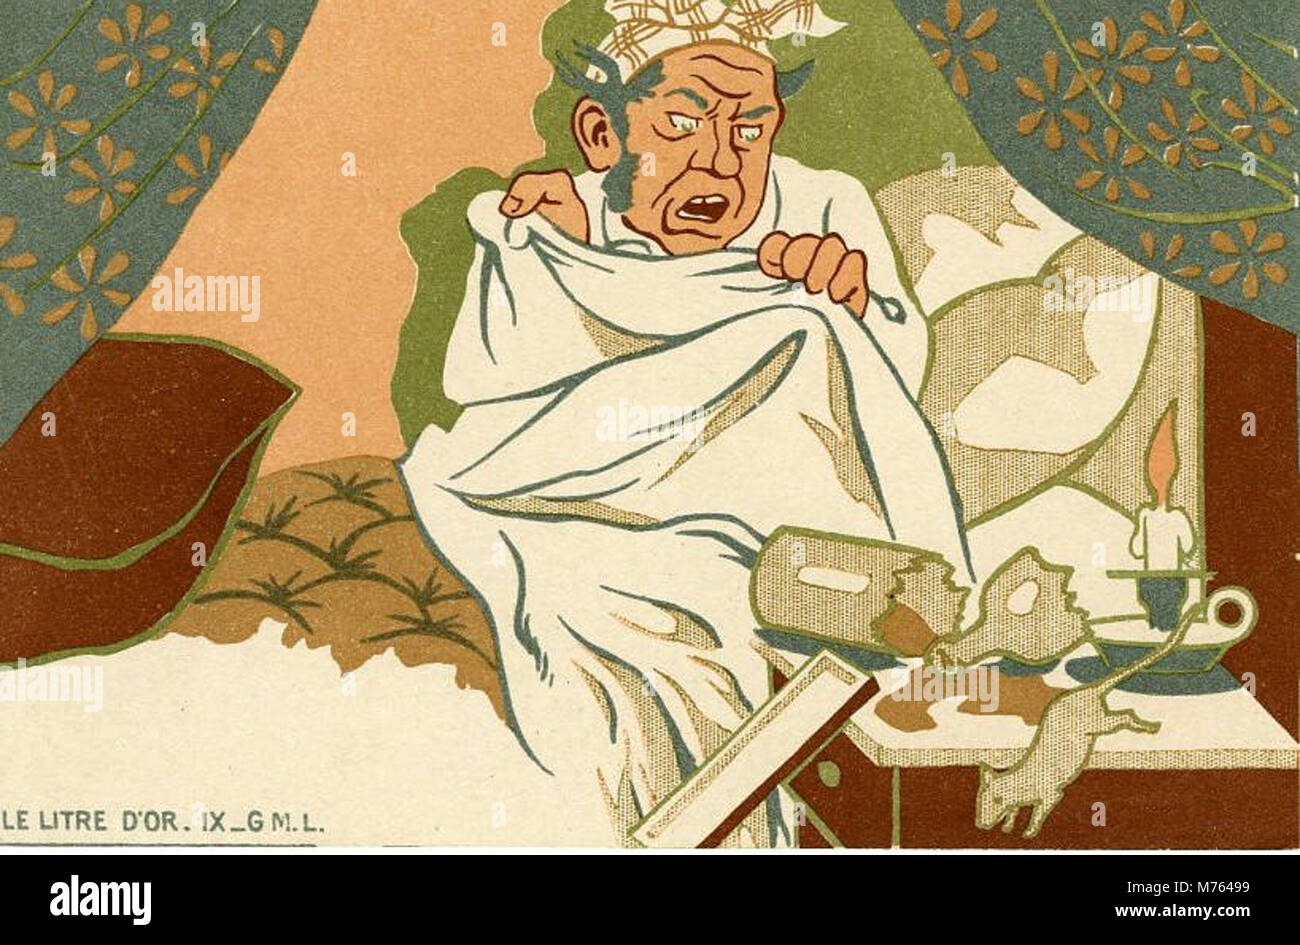 Le Litre D'or I GML 10 card cartoon series showing man retiring after putting his gold dust in a... (NBY 8101) - Stock Image